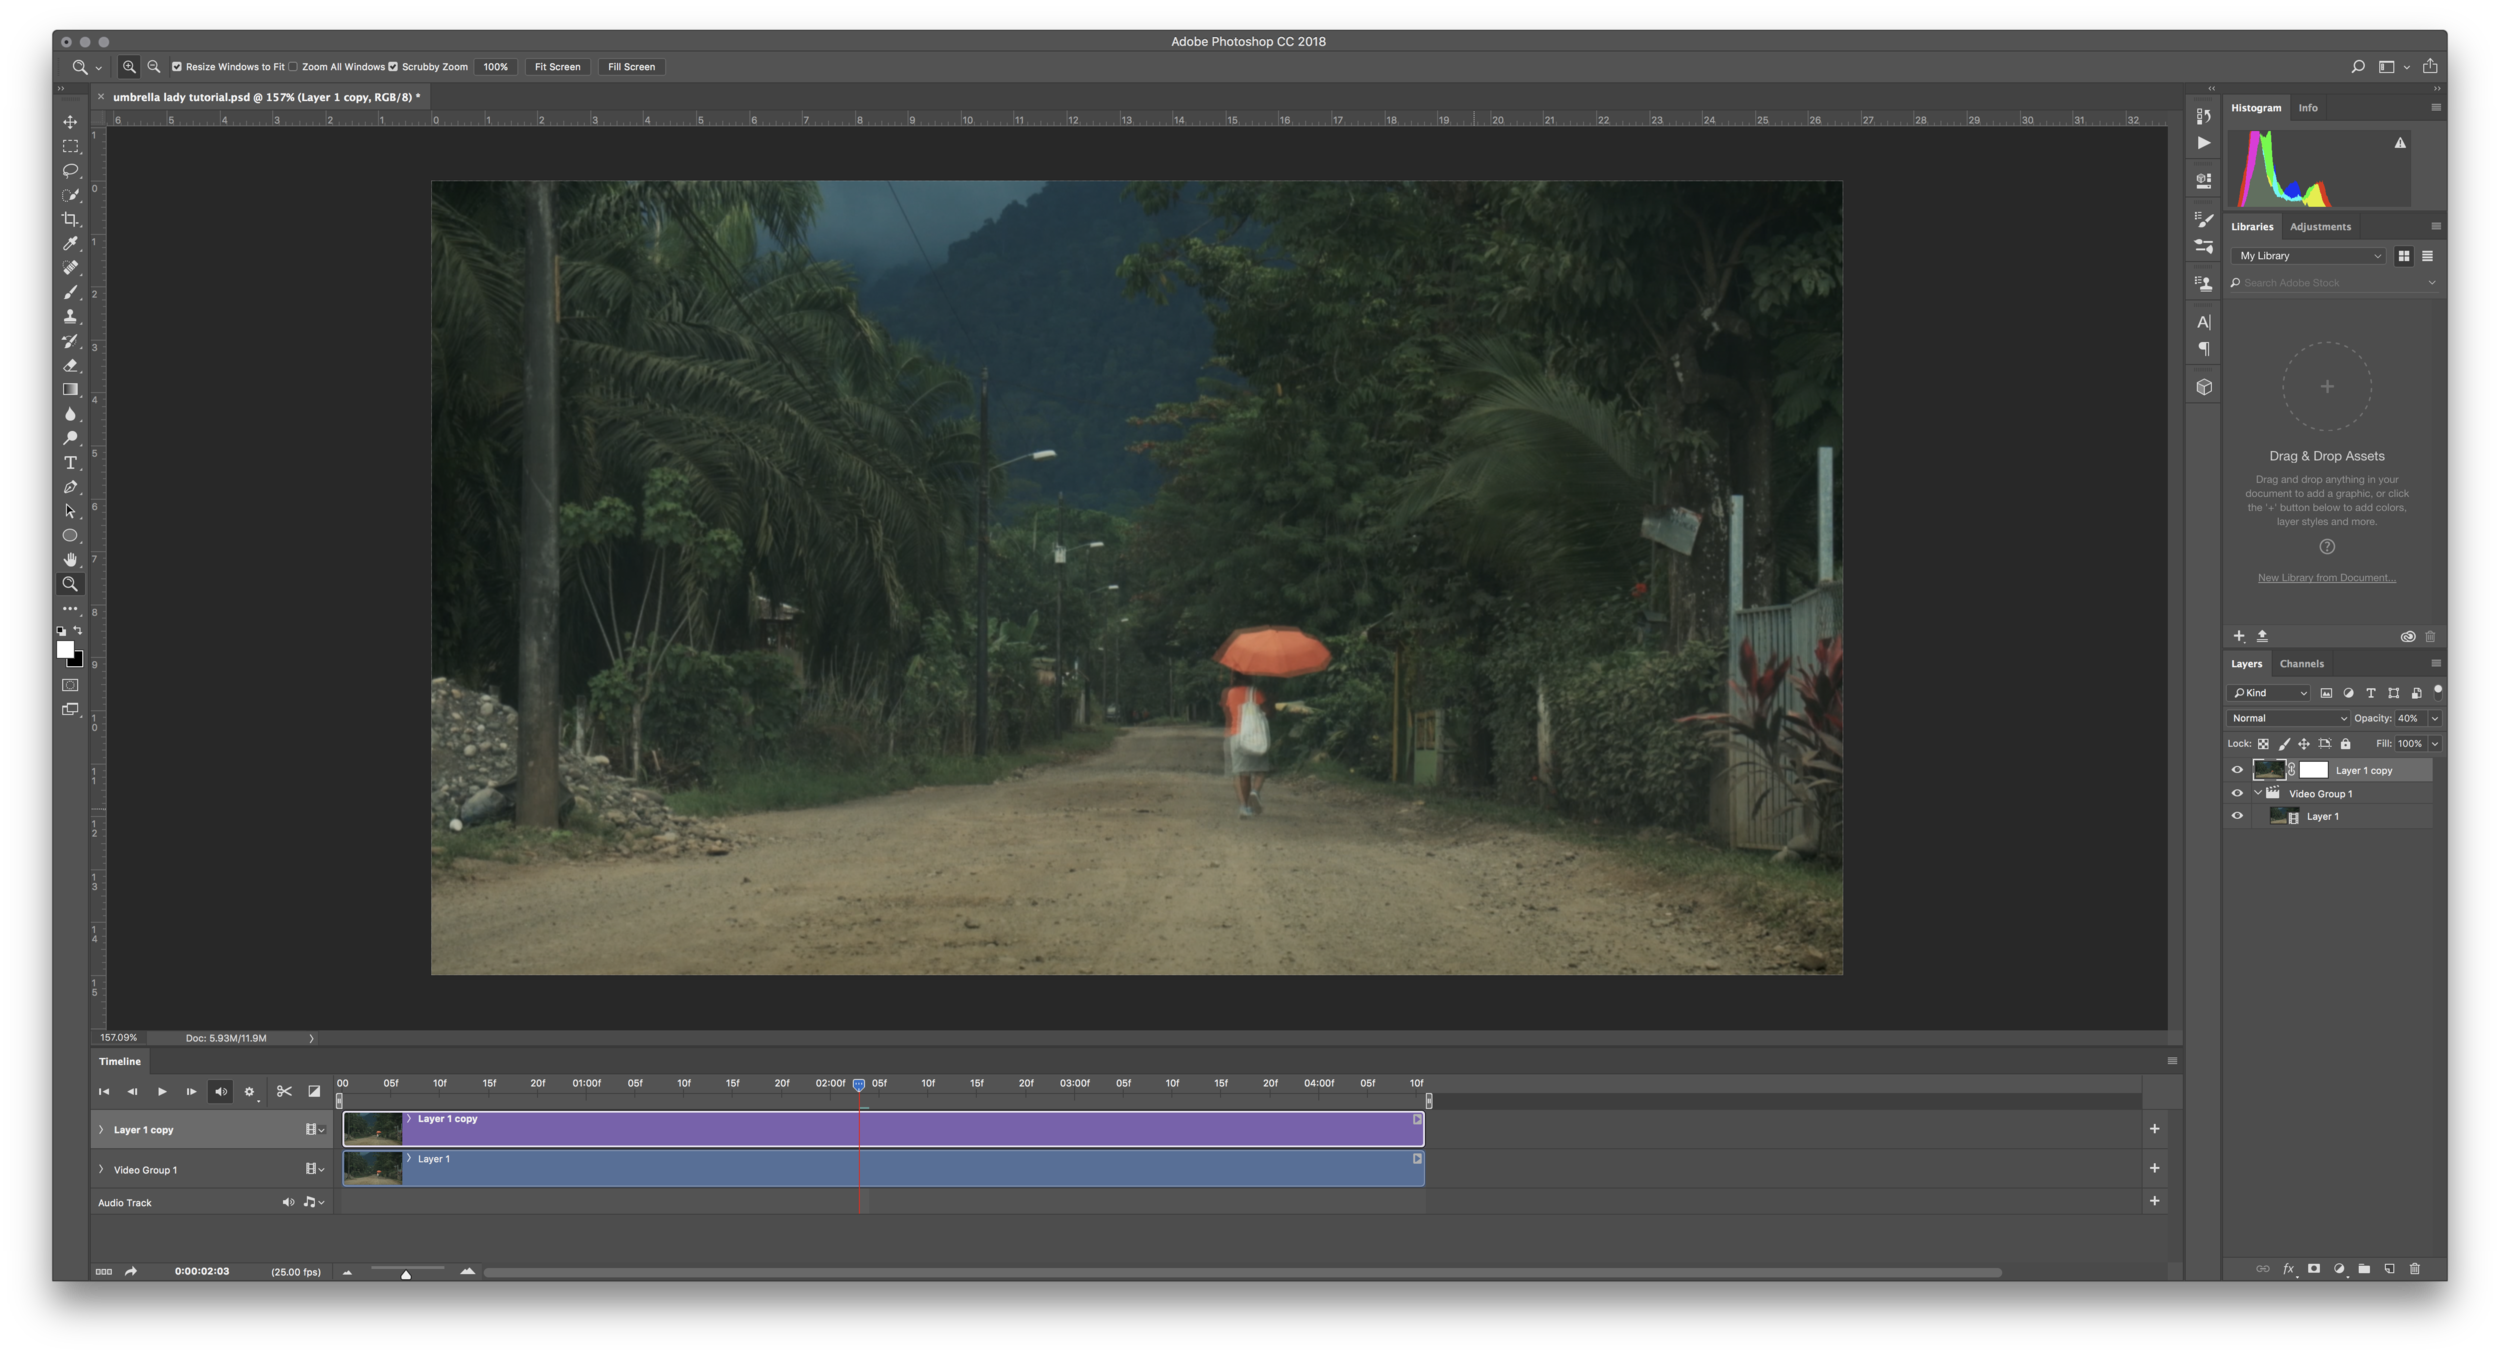 cinemagraph-gif-tutorial-from-video-photoshop-premiere-4.jpg